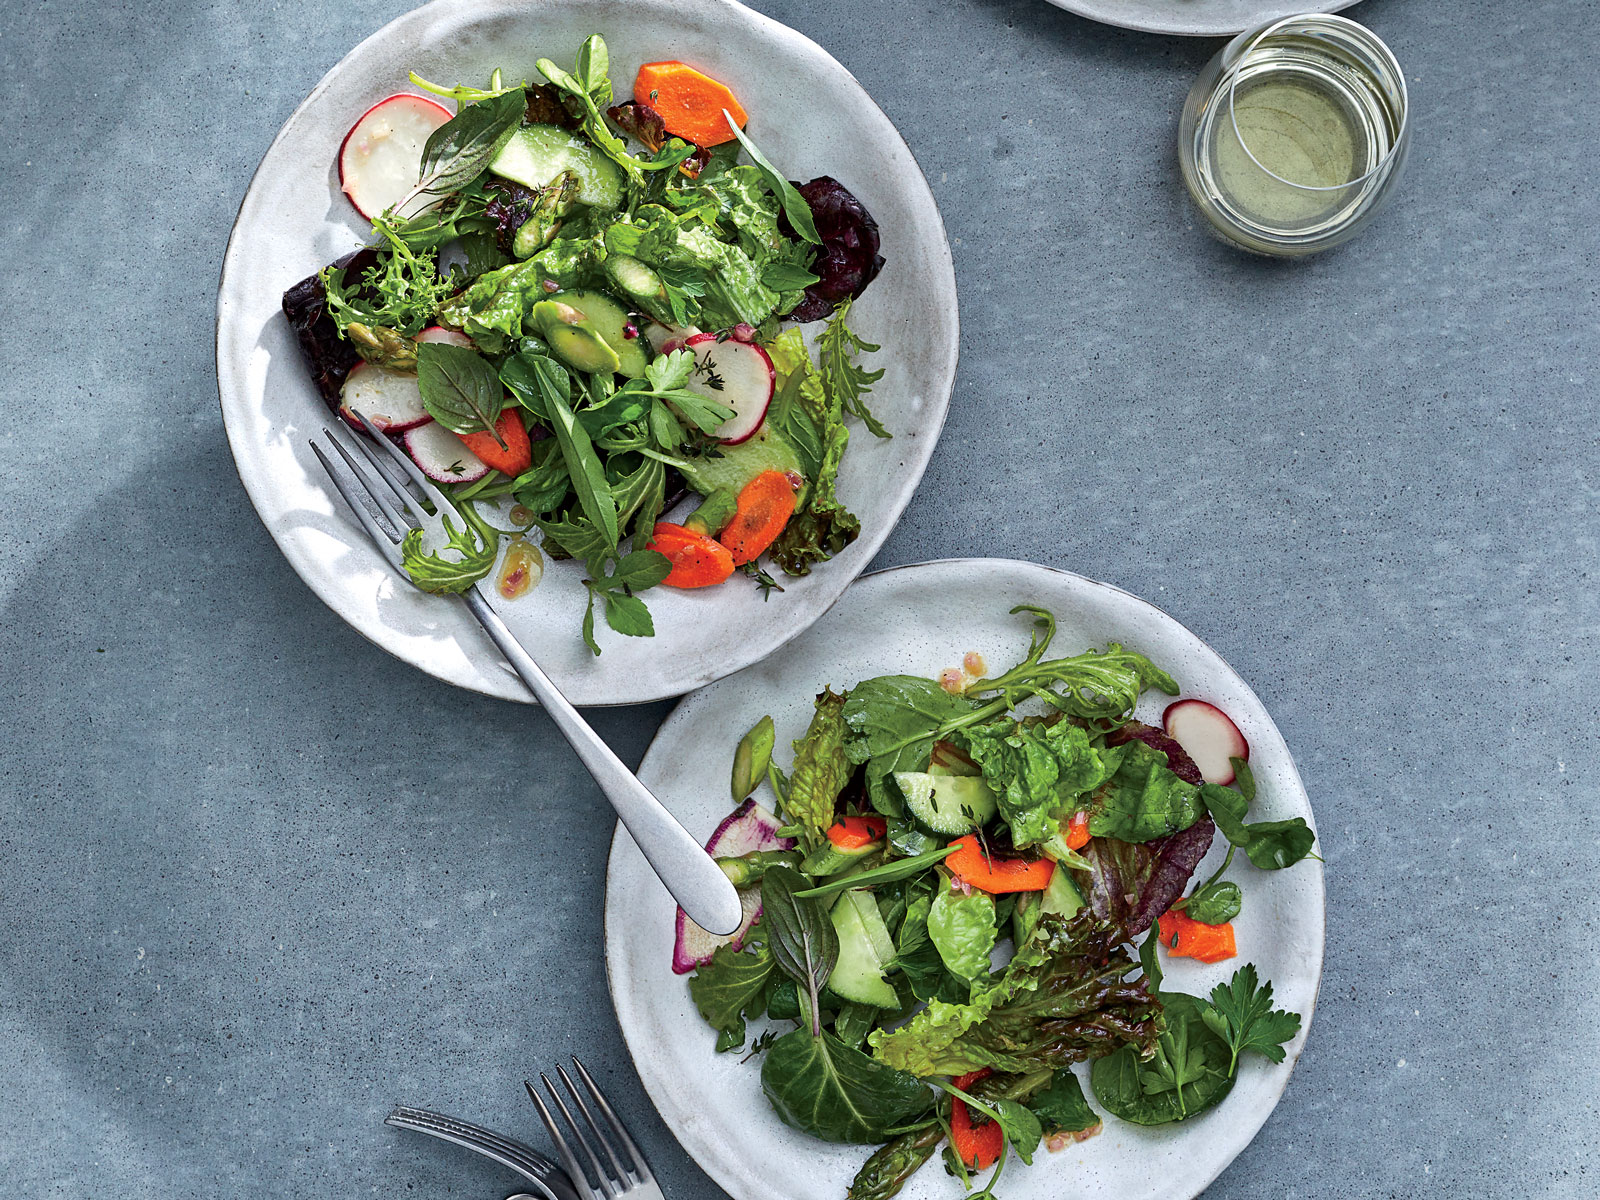 How to Build the Perfect Green Salad